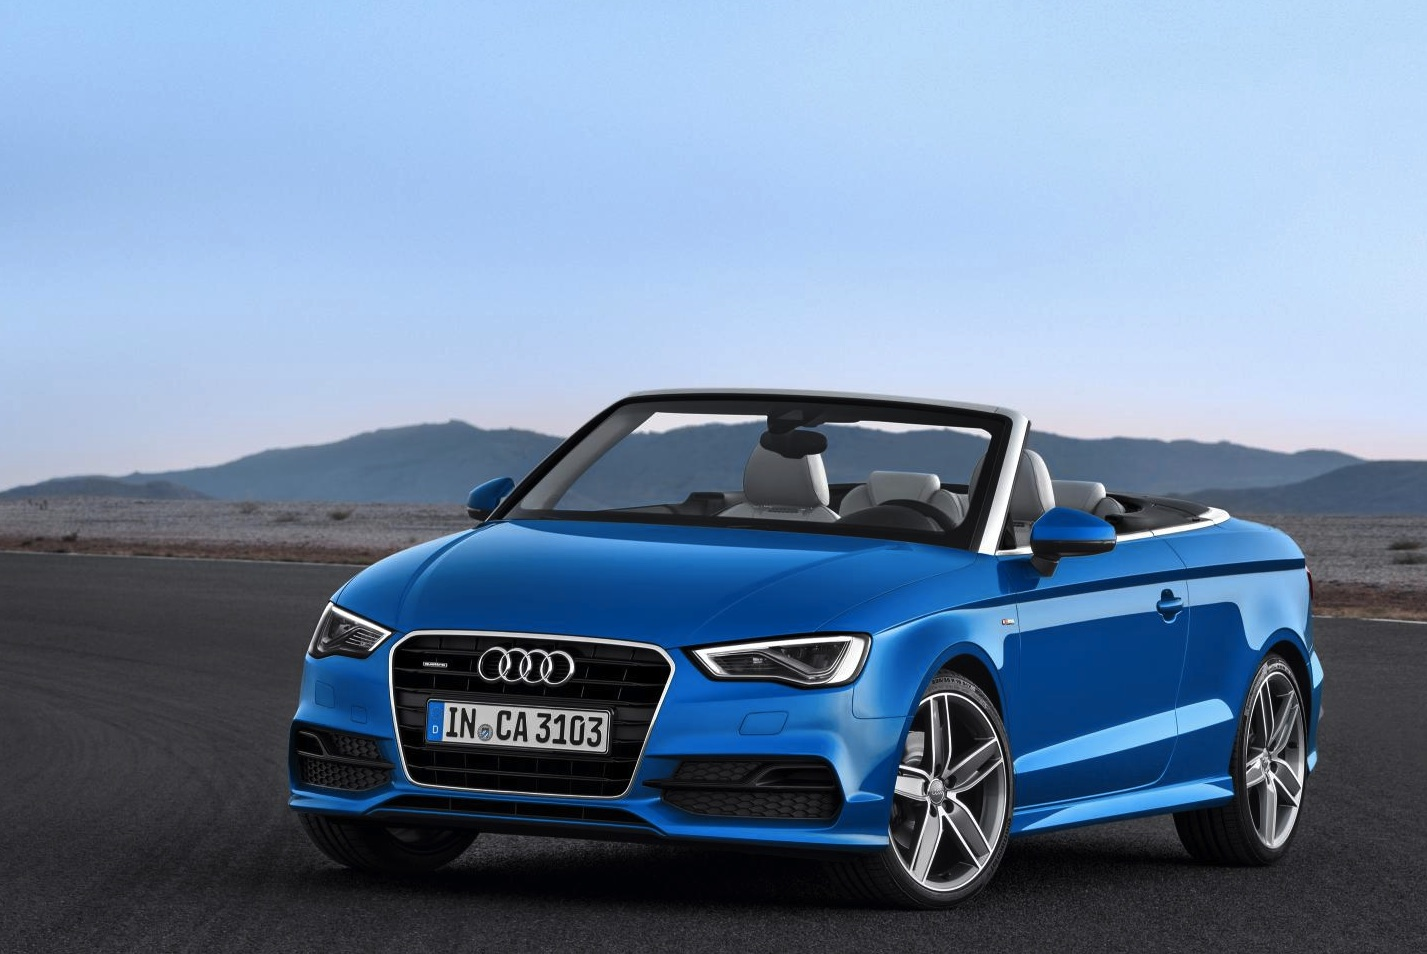 Audi A3 Cabriolet Unveiled, Topless S3 Planned Too: Latest News – Surf4cars